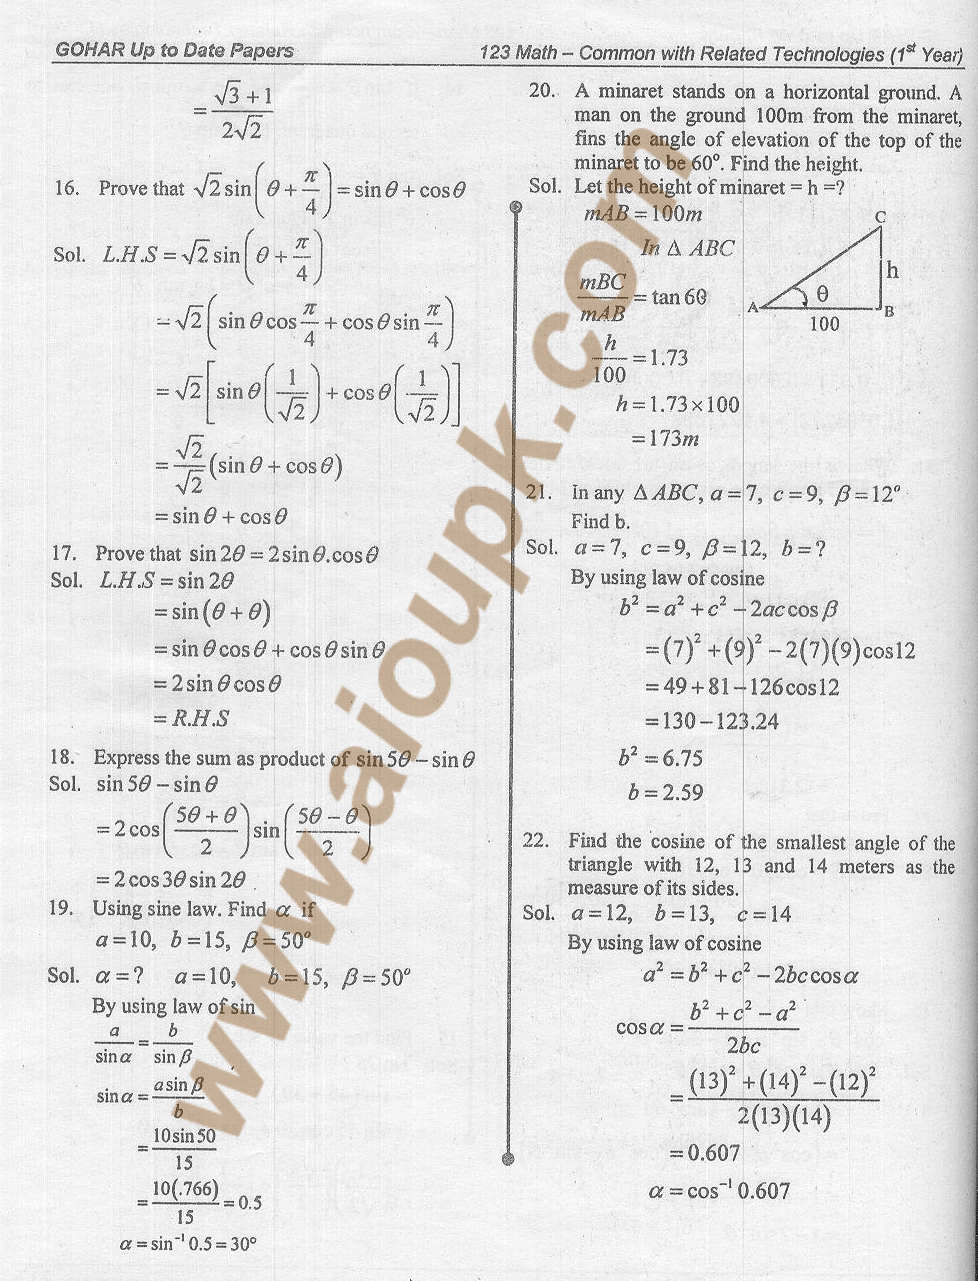 math pass year paper Previous year papers with solution of wbjee (west bengal joint entrance  examination),  the best way to have that idea is to have a look at past year  papers of that examination  mathematics question paper (uploaded by wbjee  board.